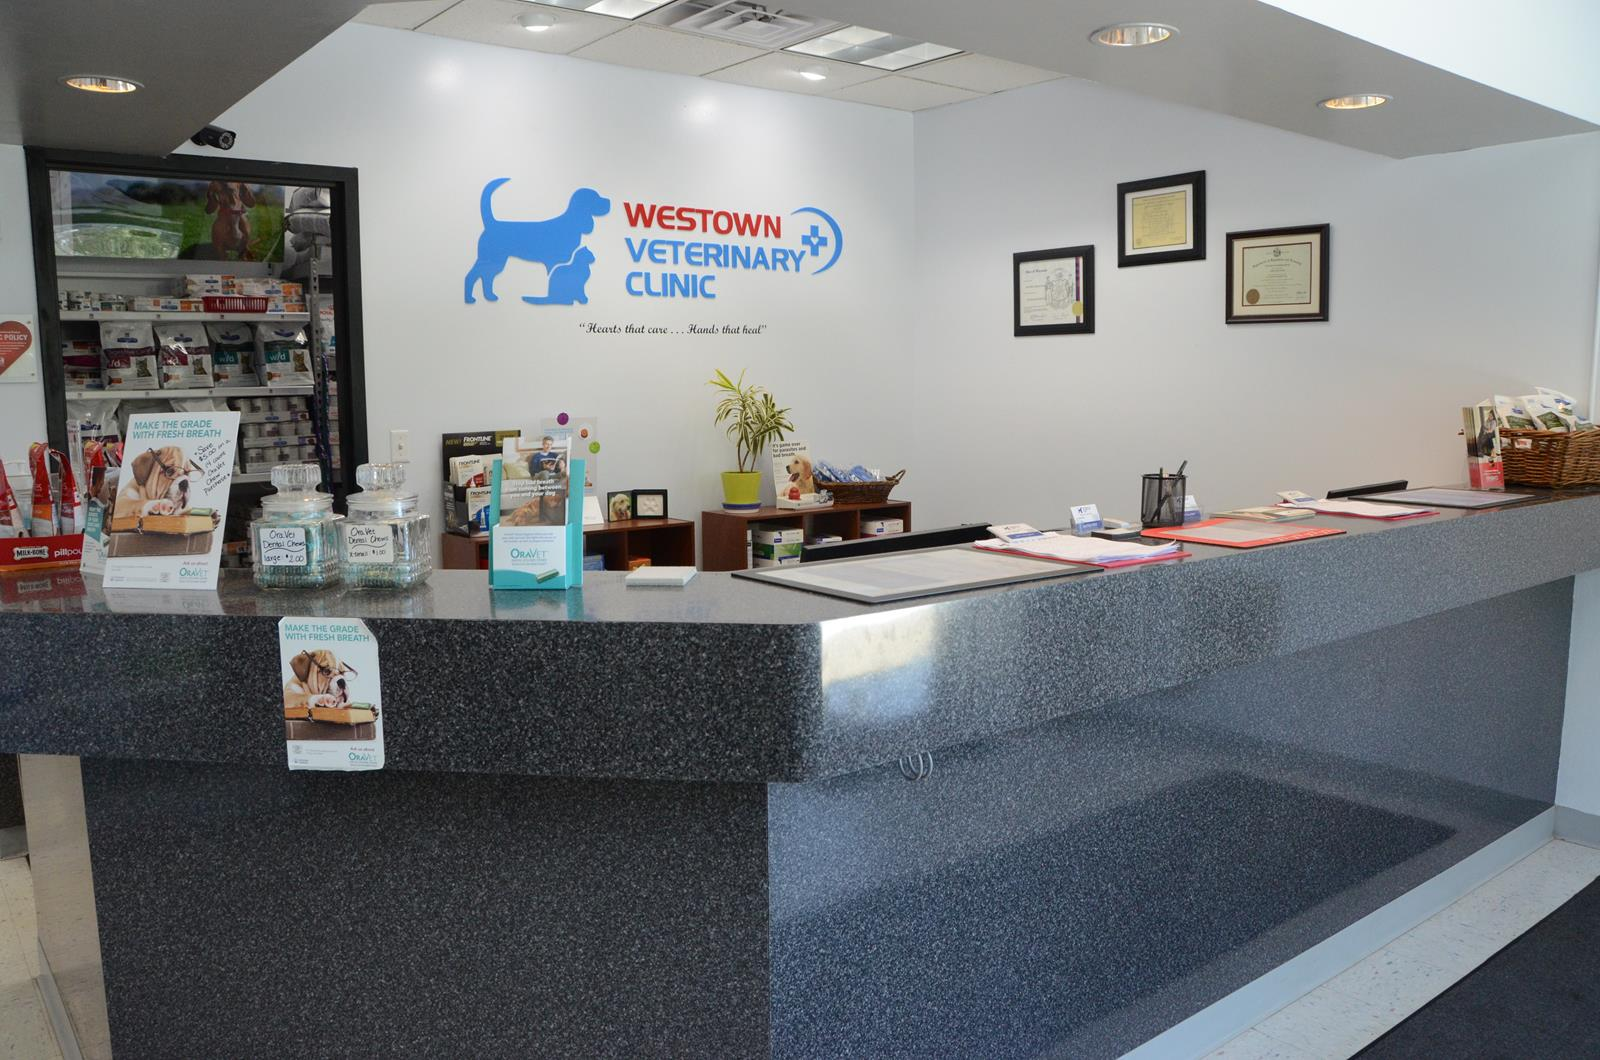 Westown Veterinary Clinic Animal Hospital In Waukesha Wi